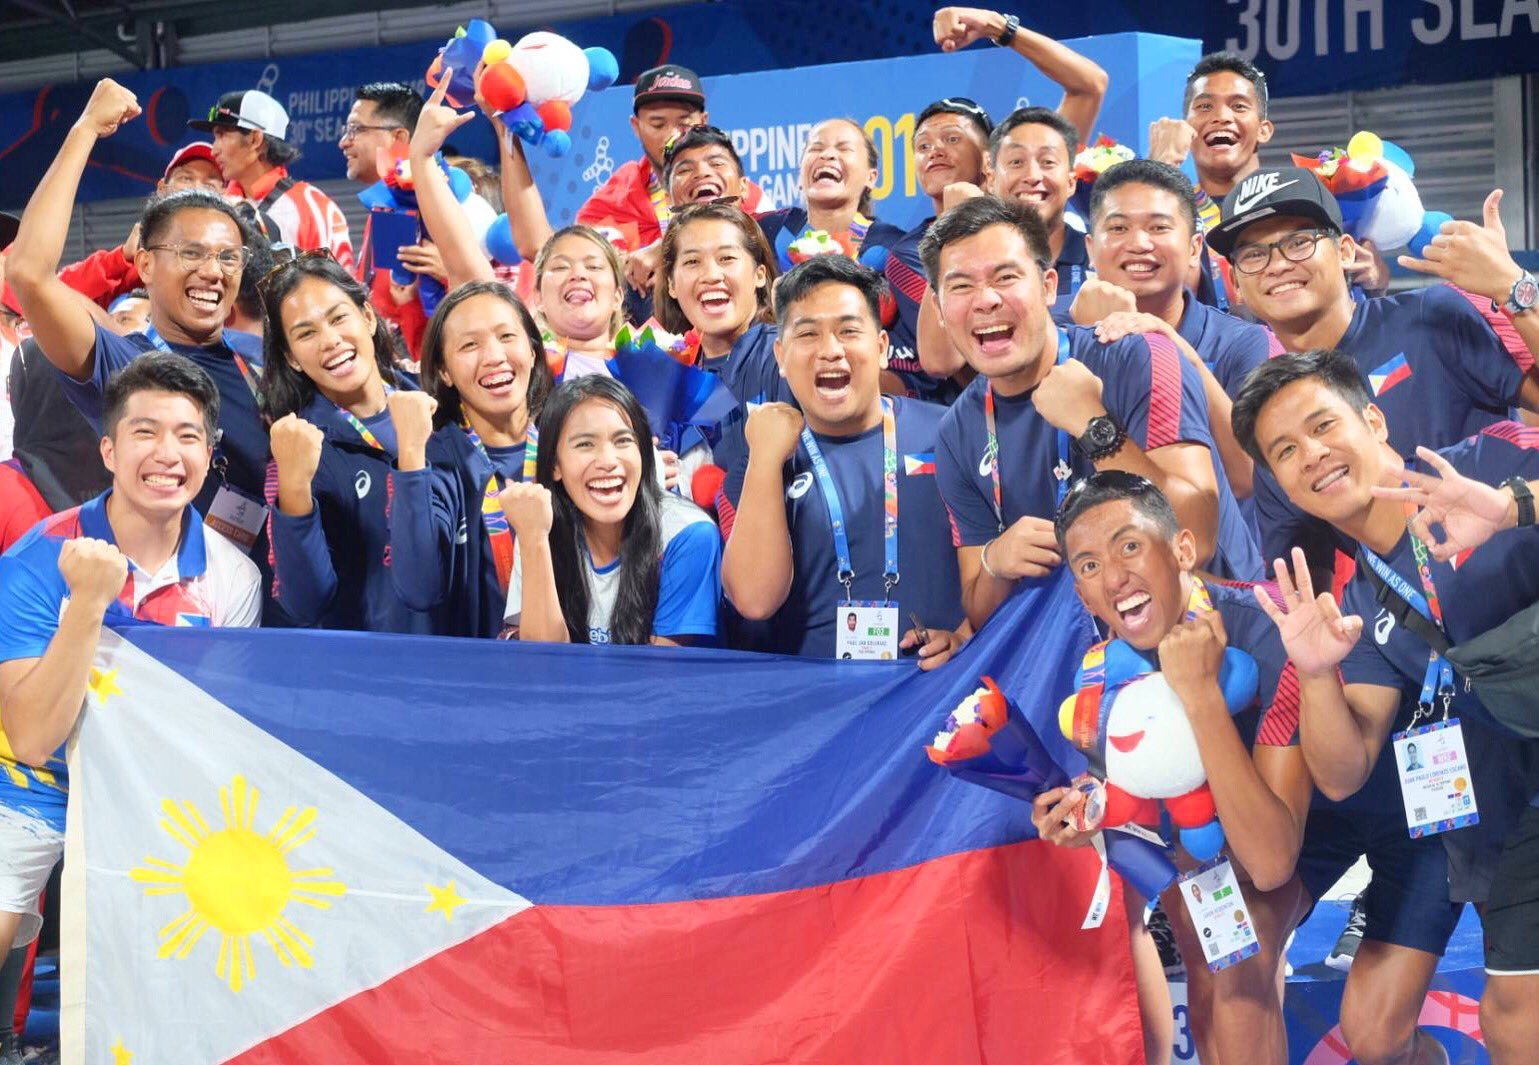 Sports enthusiasts and volleyball fans cheer for the Philippines' finest athletes competing at the SEA Games in Manila